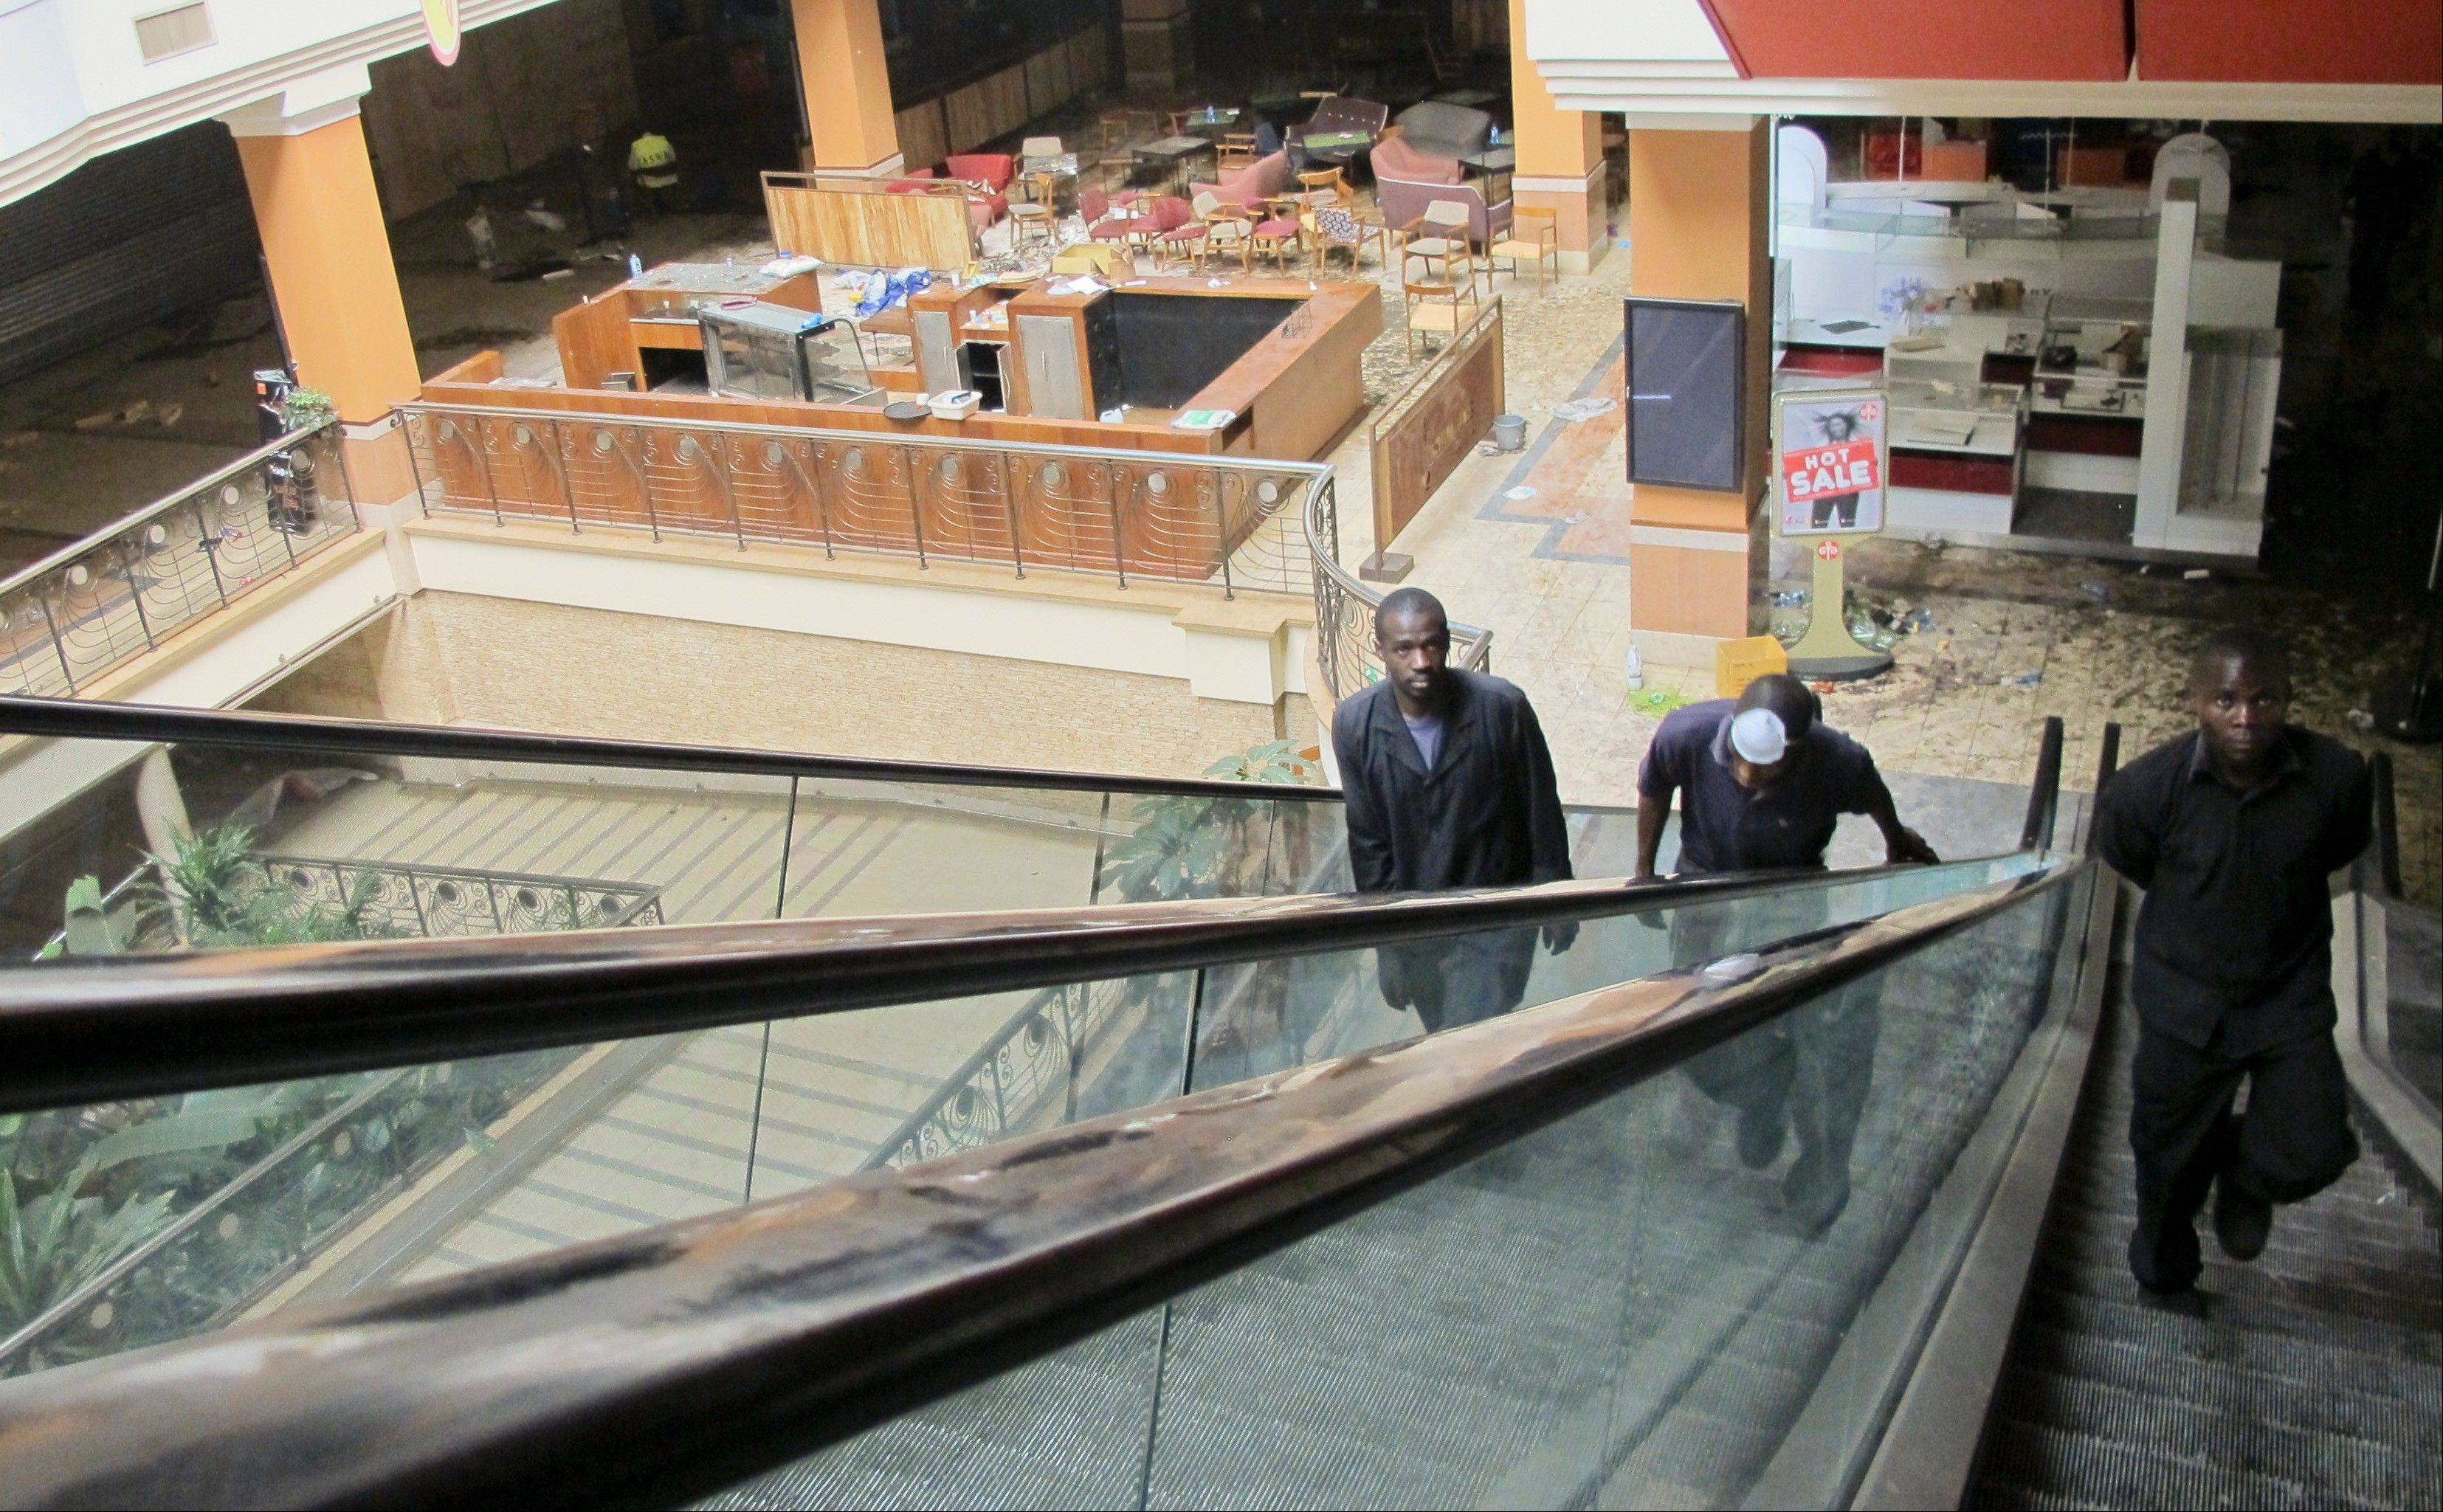 Men walk up the escalators from the ground floor in the Westgate Mall in Nairobi, Kenya Tuesday, Oct. 1, 2013. A top Kenya government official says four armed assailants can be seen on closed circuit television footage during the terrorist attack on an upscale mall in which at least 67 people were killed, an indication that there may not have been as many attackers as initially believed.